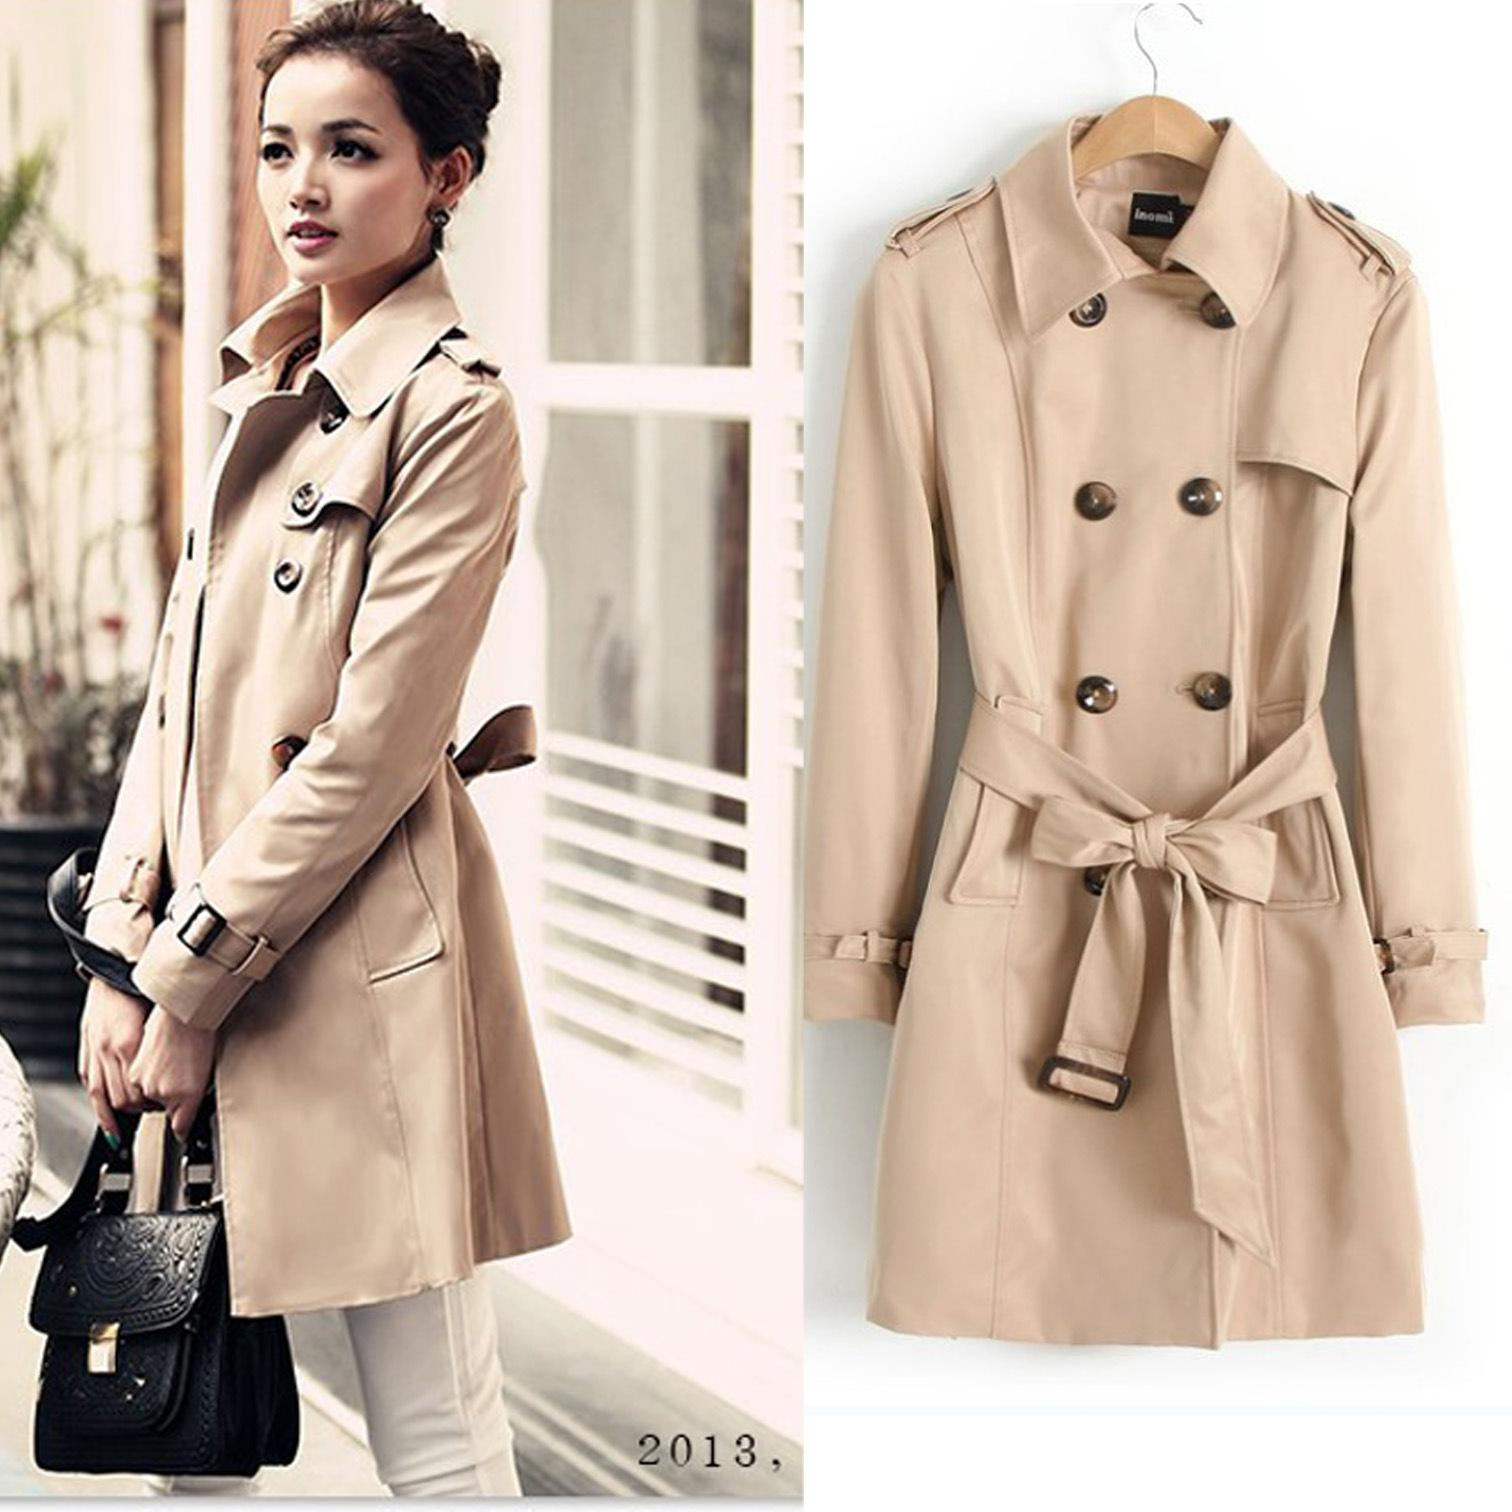 2017 Trench Coat 2013 New Women's Autumn Korean Temperament Slim ...